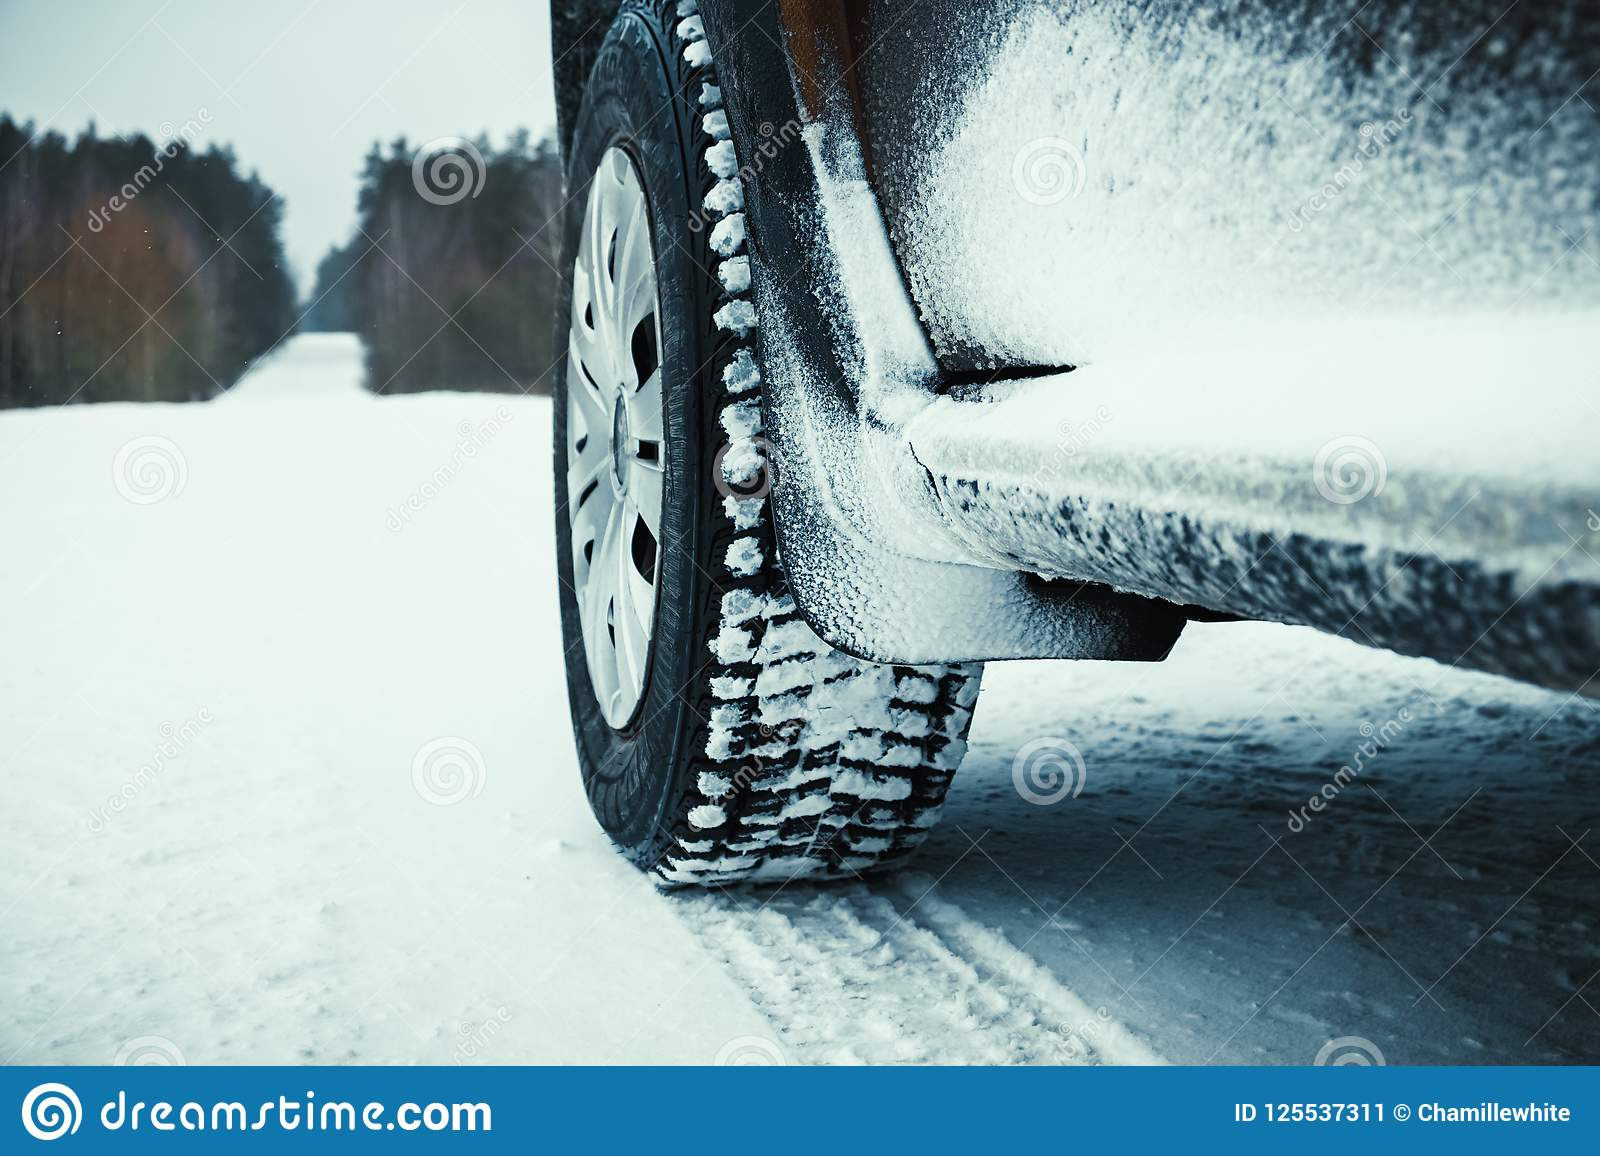 Car tires covered with snow on winter road.